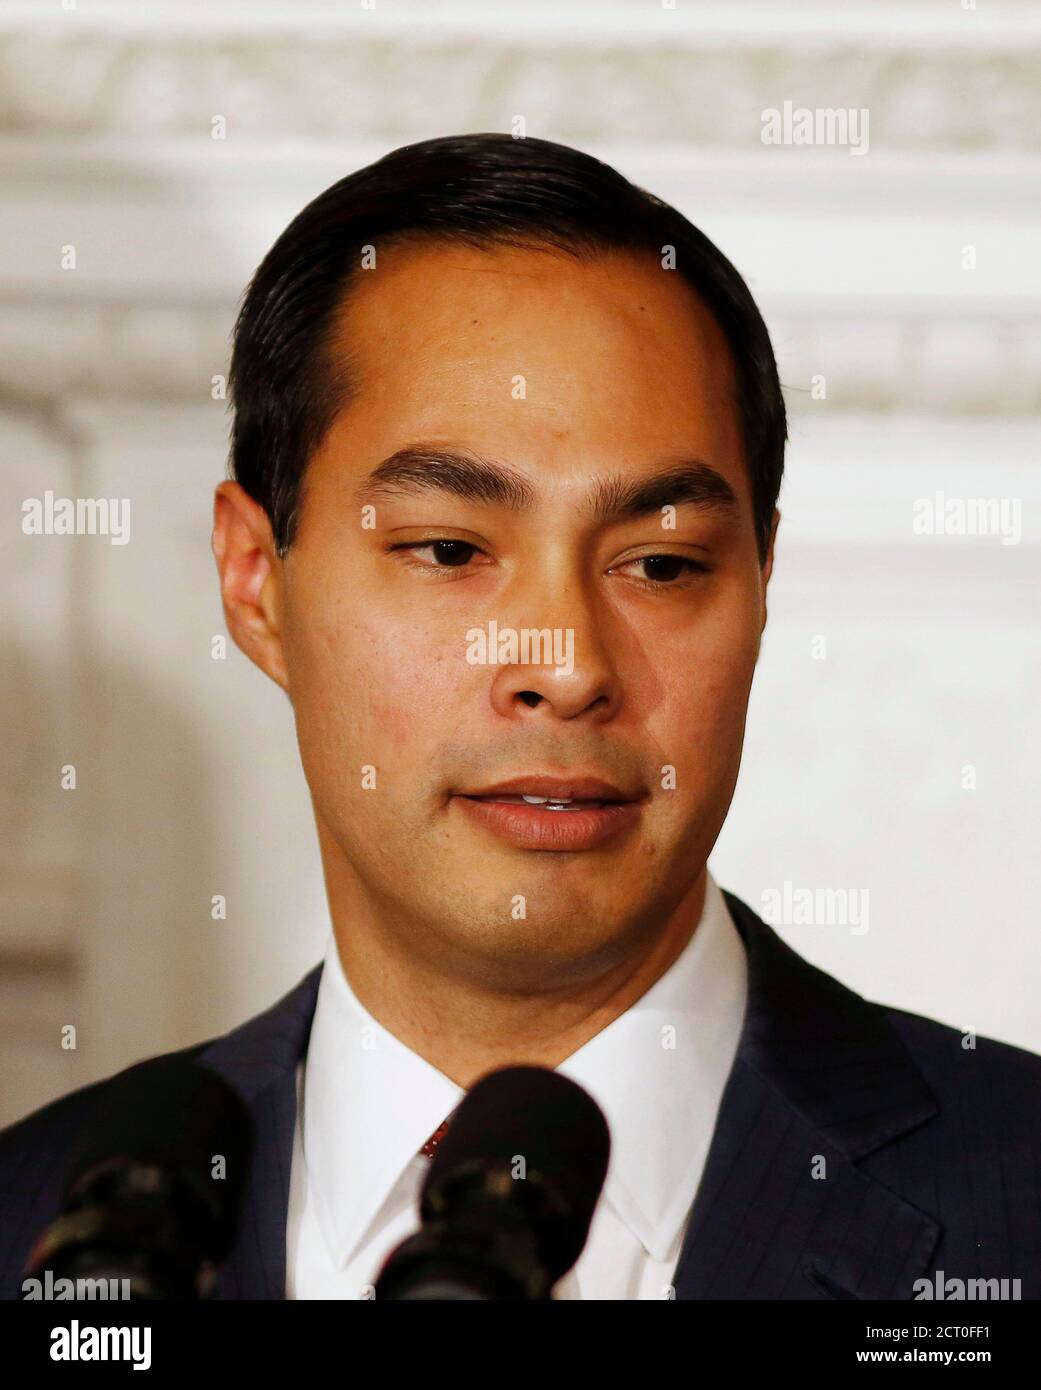 San Antonio Mayor Julian Castro (L), who is U.S. President Barack Obama's choice as the new Secretary of HUD, is pictured in the State Dining Room at the White House in Washington May 23, 2014.    REUTERS/Larry Downing   (UNITED STATES - Tags: POLITICS HEADSHOT) Stock Photo